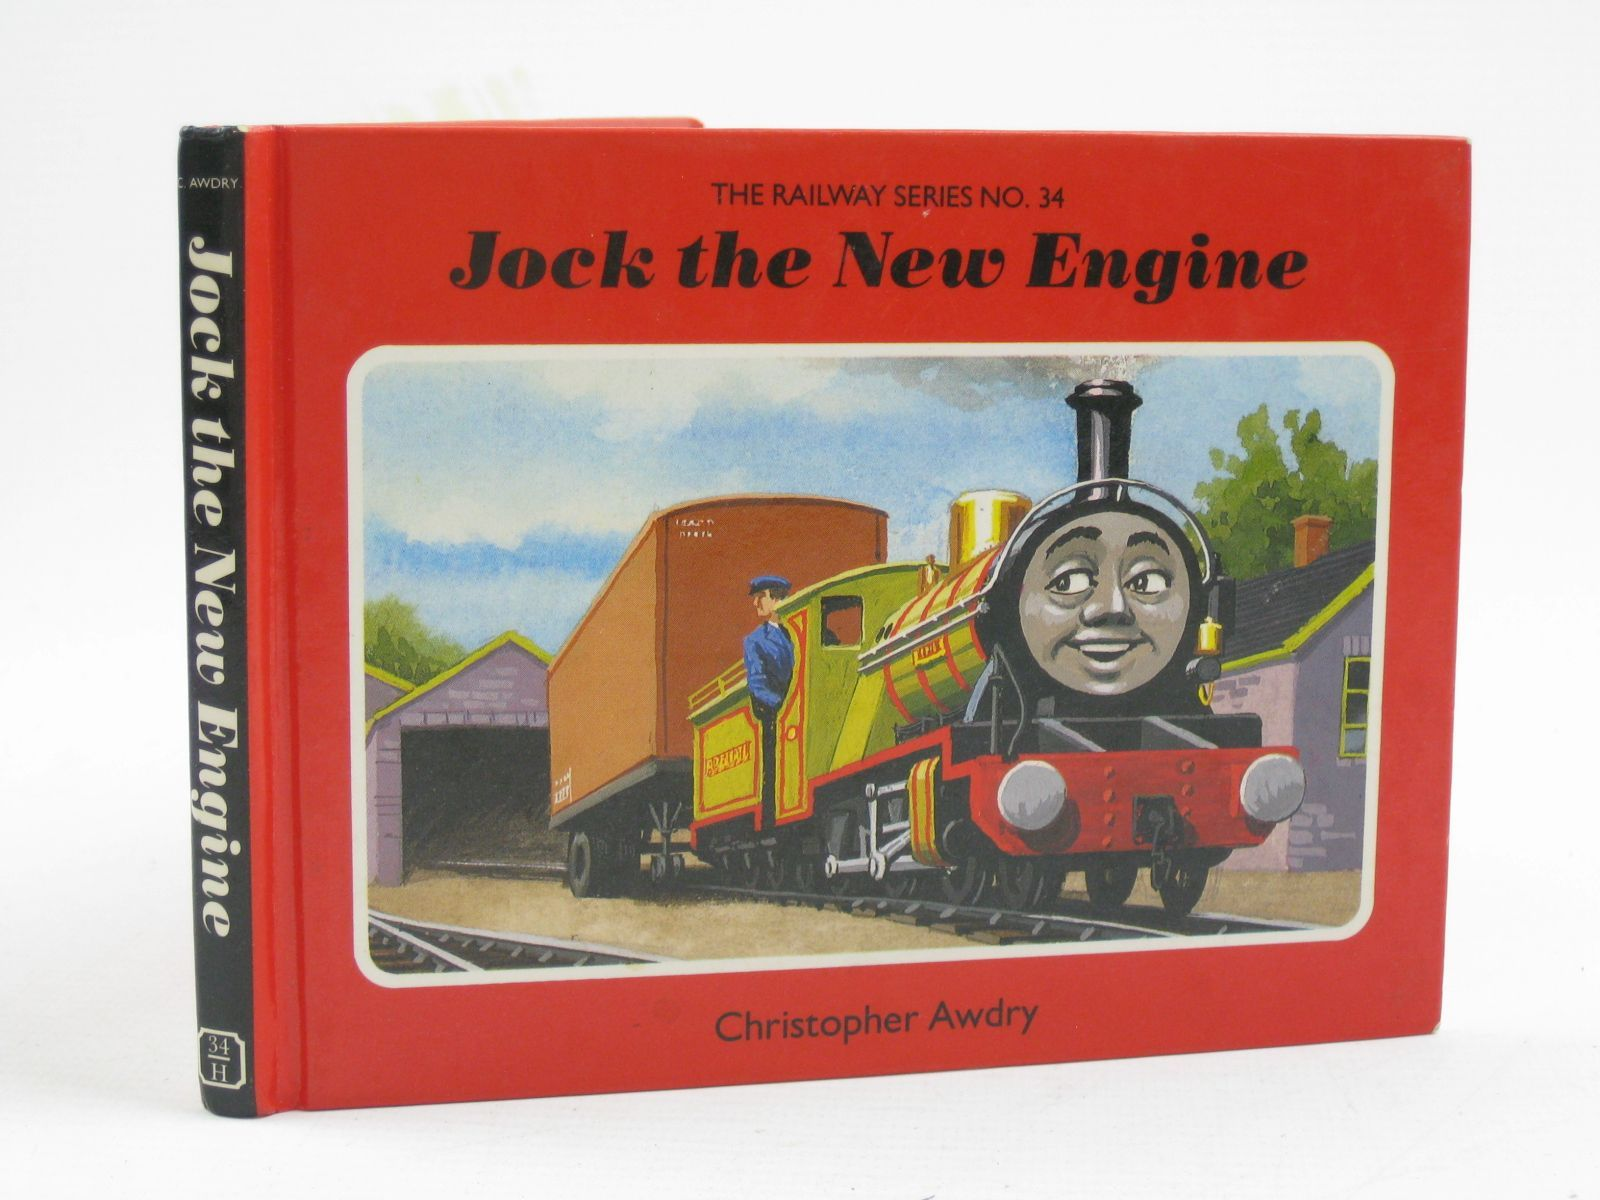 Photo of JOCK THE NEW ENGINE written by Awdry, Christopher illustrated by Spong, Clive published by Heinemann (STOCK CODE: 1316752)  for sale by Stella & Rose's Books